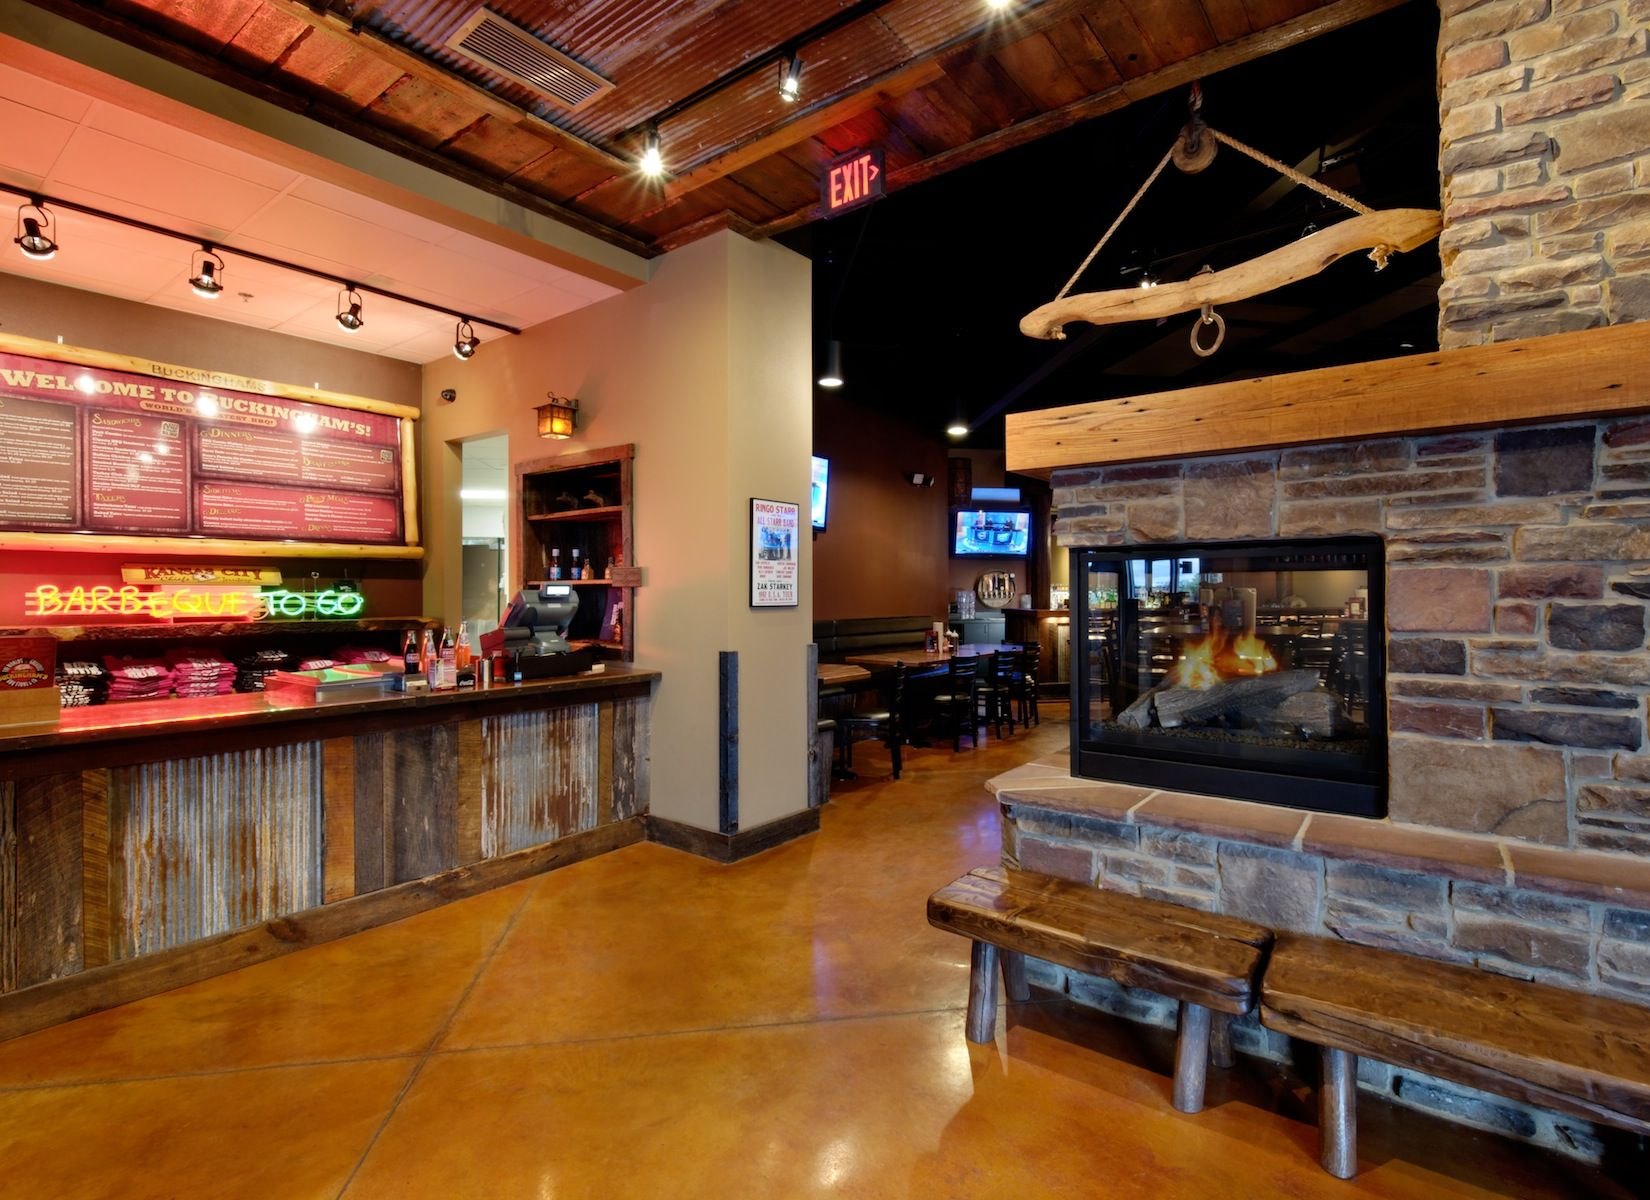 bbq restaurant interior design - google search | restaurant ideas